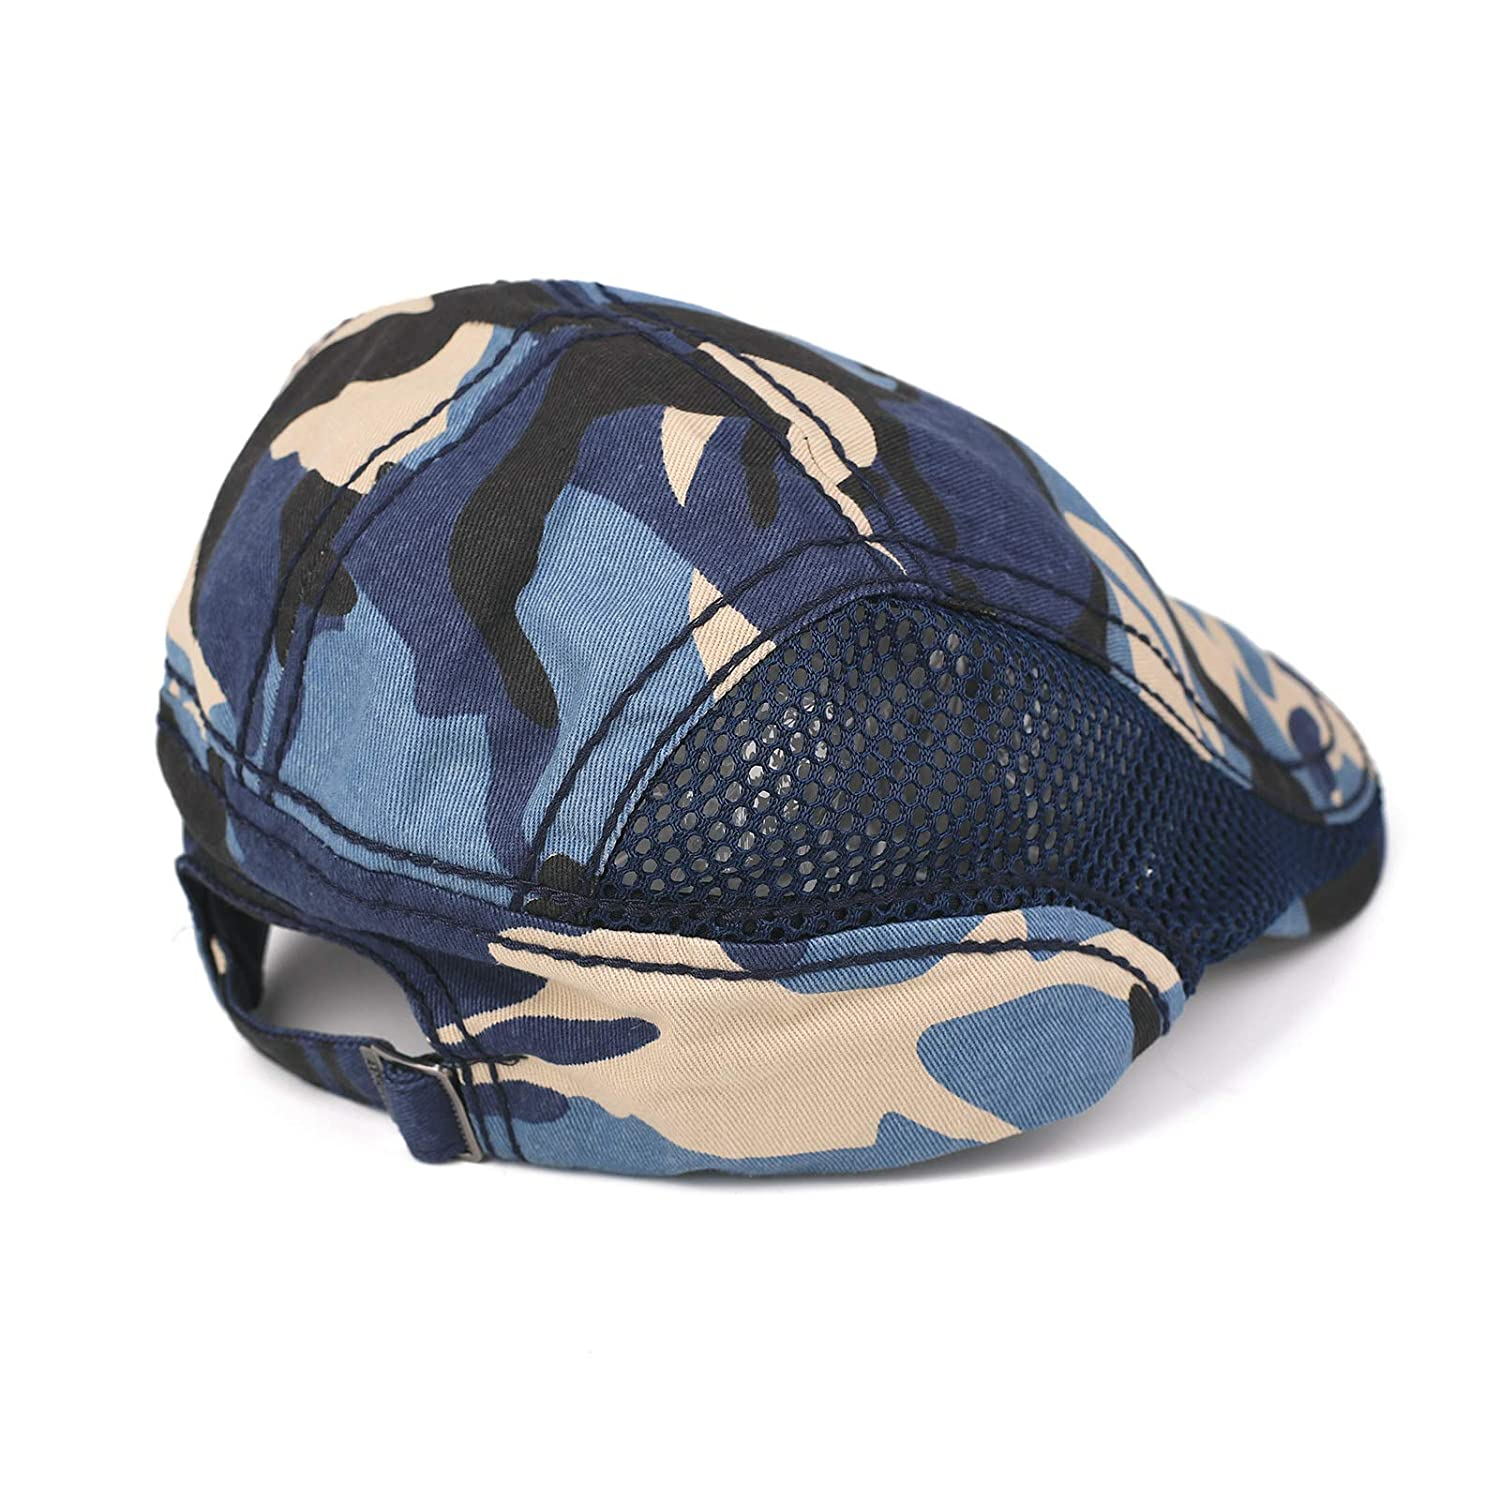 HomeDay Flat Cap for Men Summer Camo Newsboy Gatsby Hat with Ventilation Side Mesh